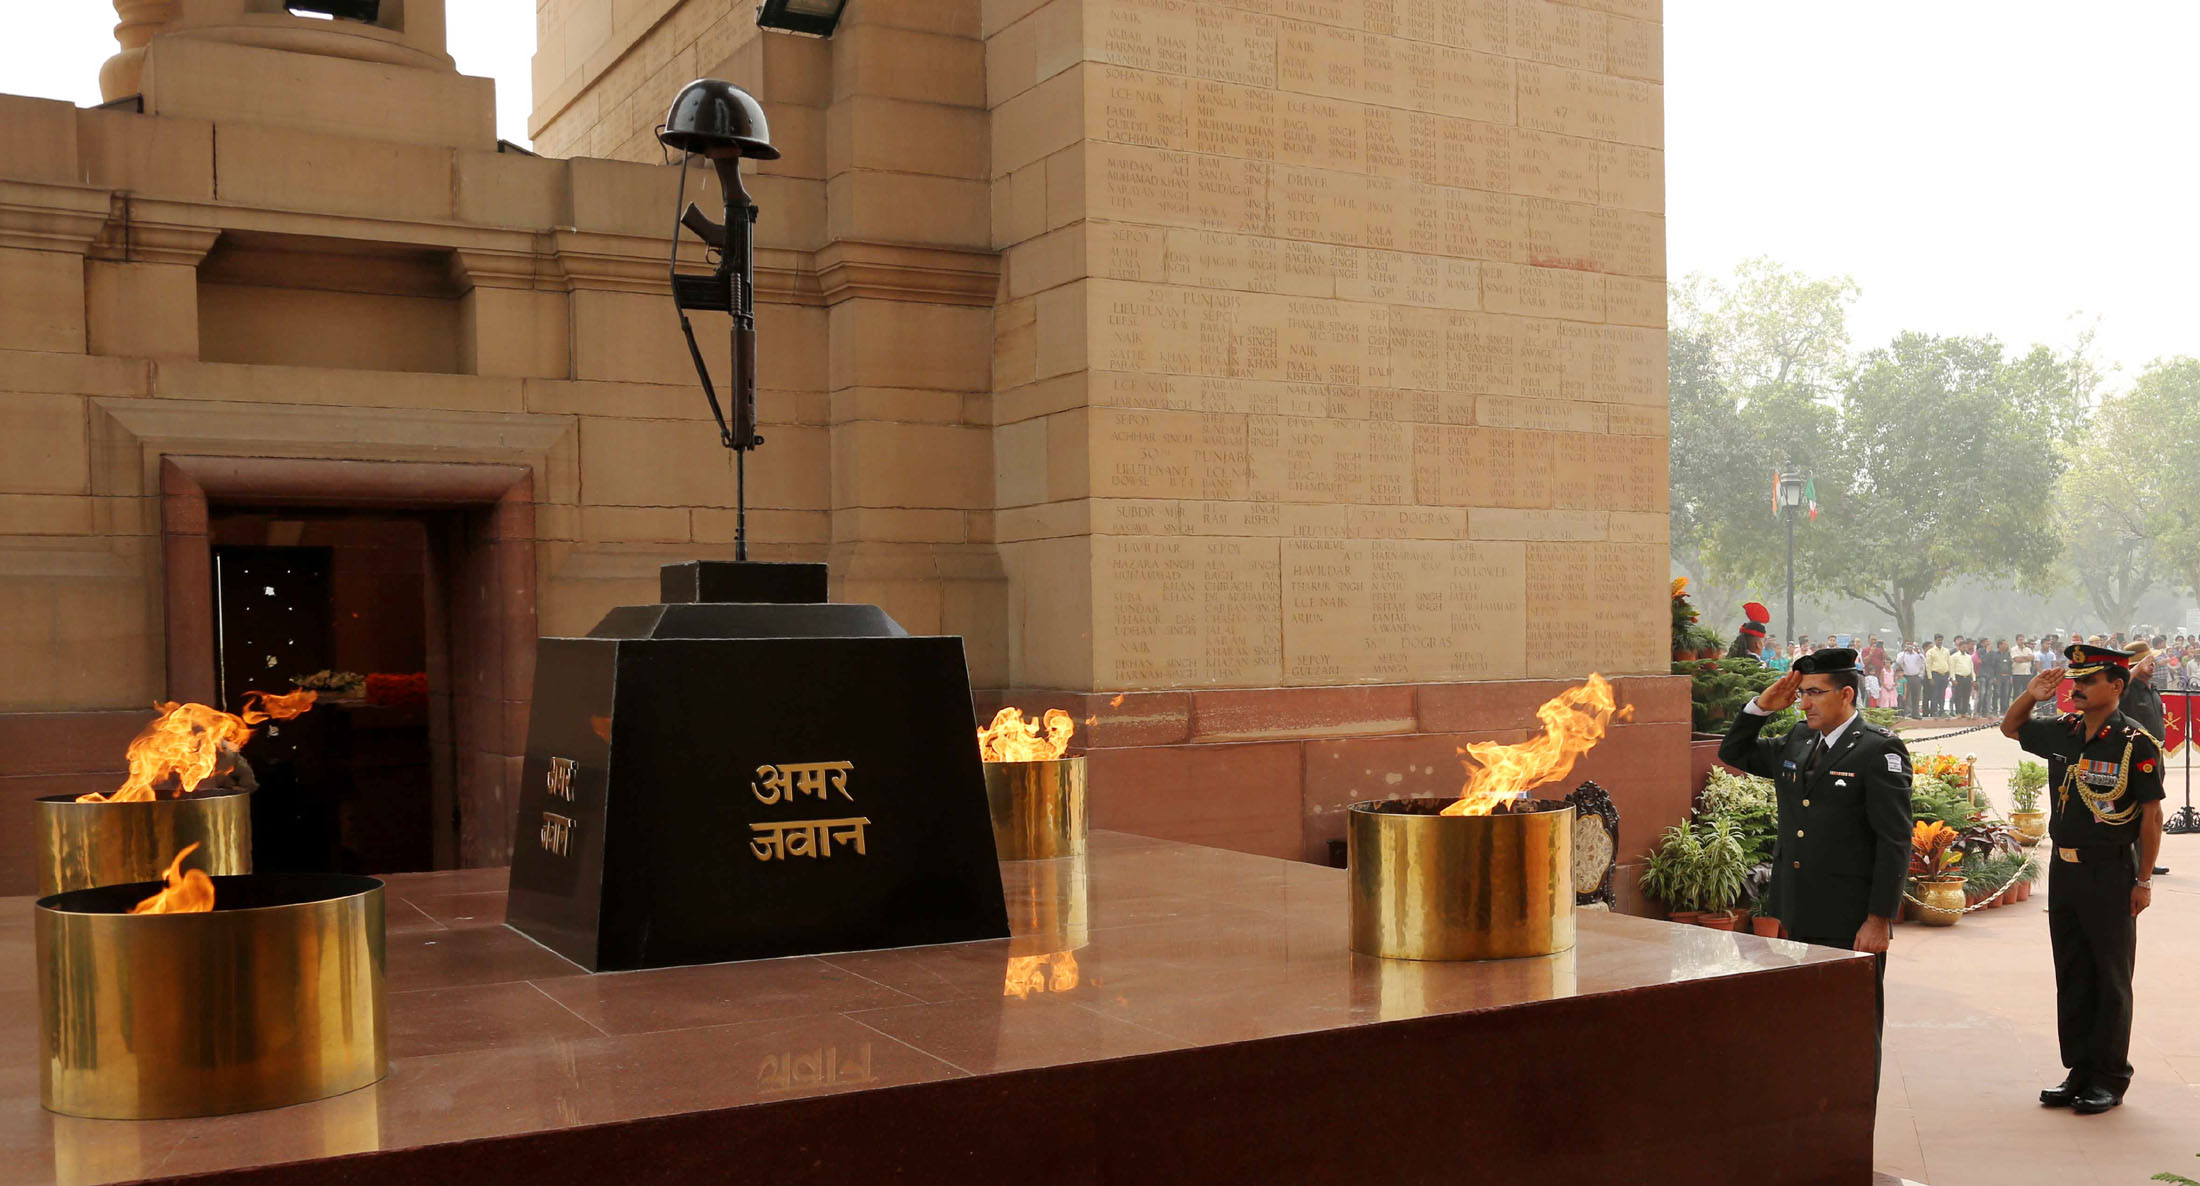 Major General Yaakov paying Tributes at Amar Jawan Jyoti